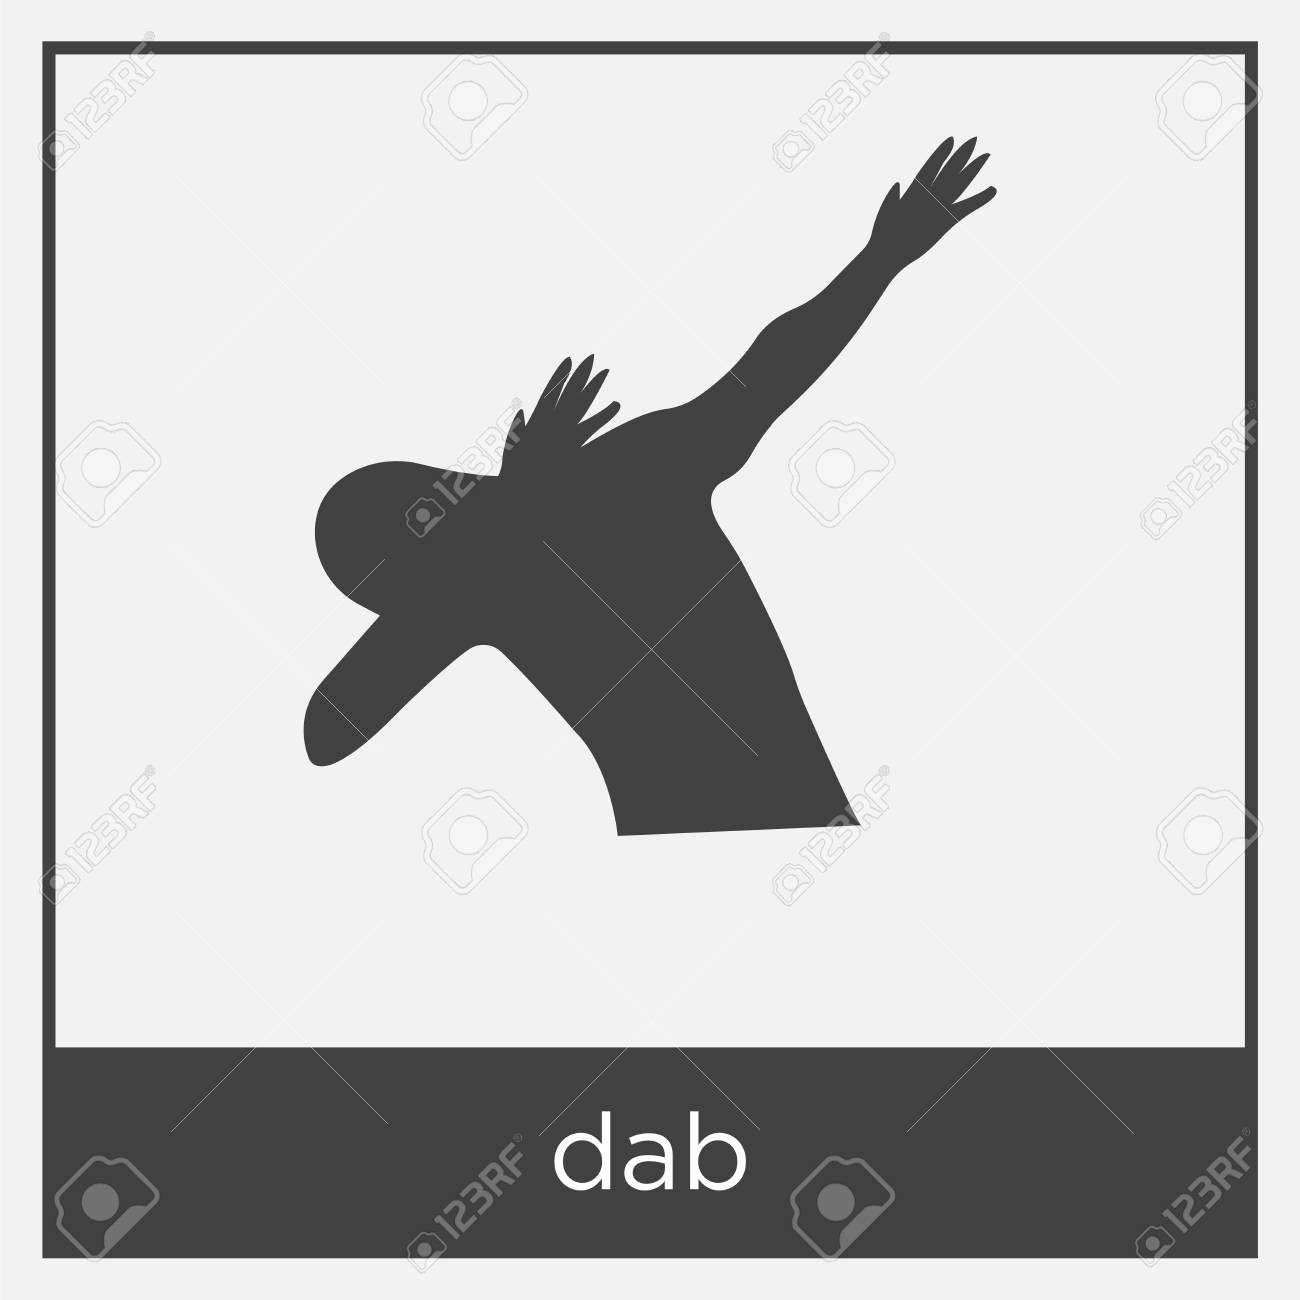 dab icon isolated on white background with black border royalty free